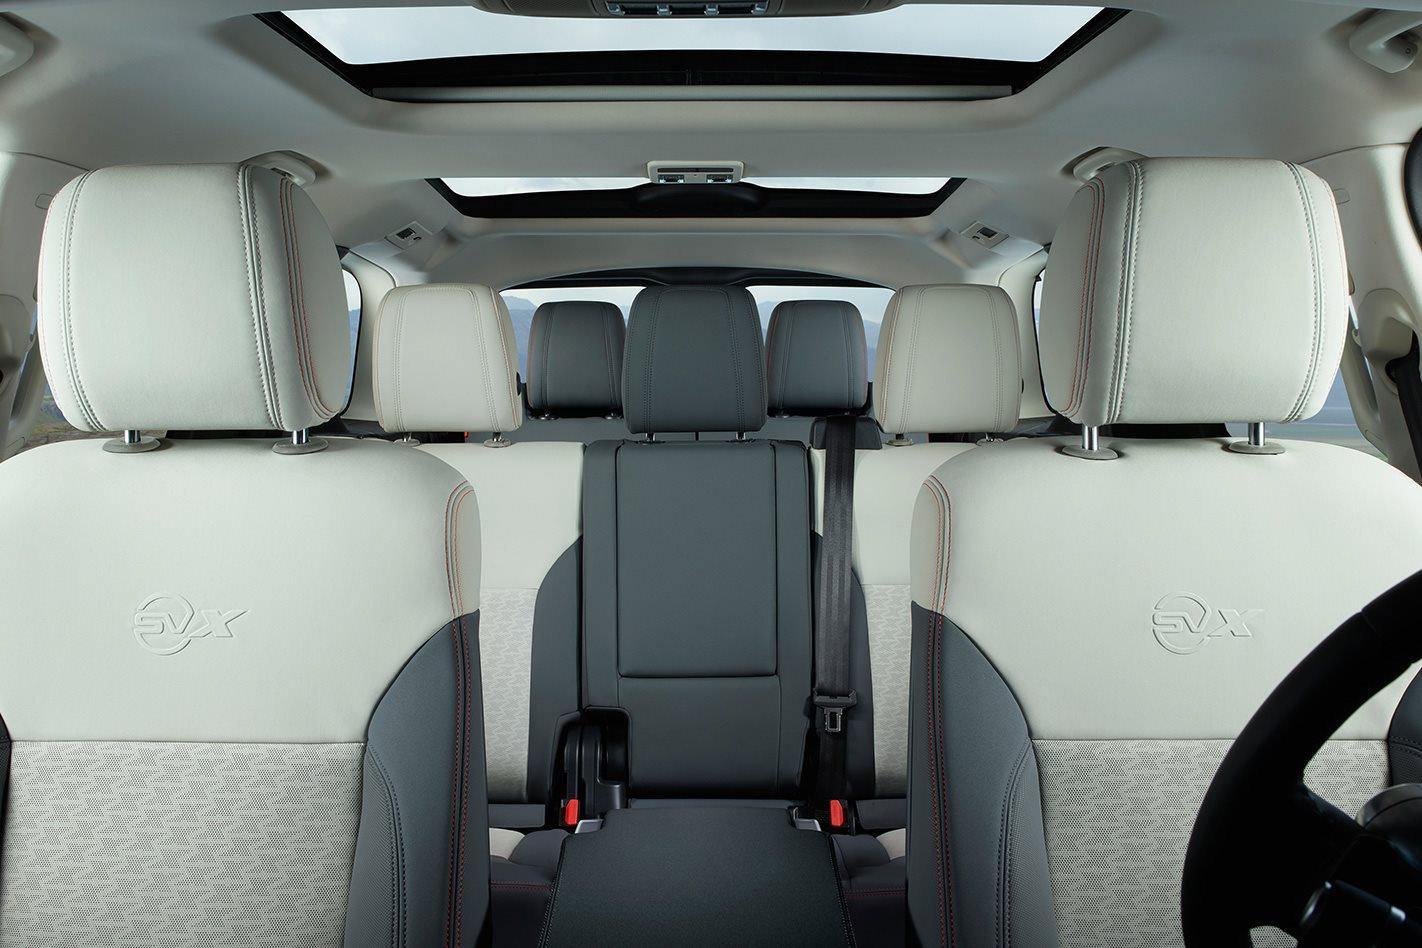 Land-Rover-Discovery-SVX-cabin.jpg